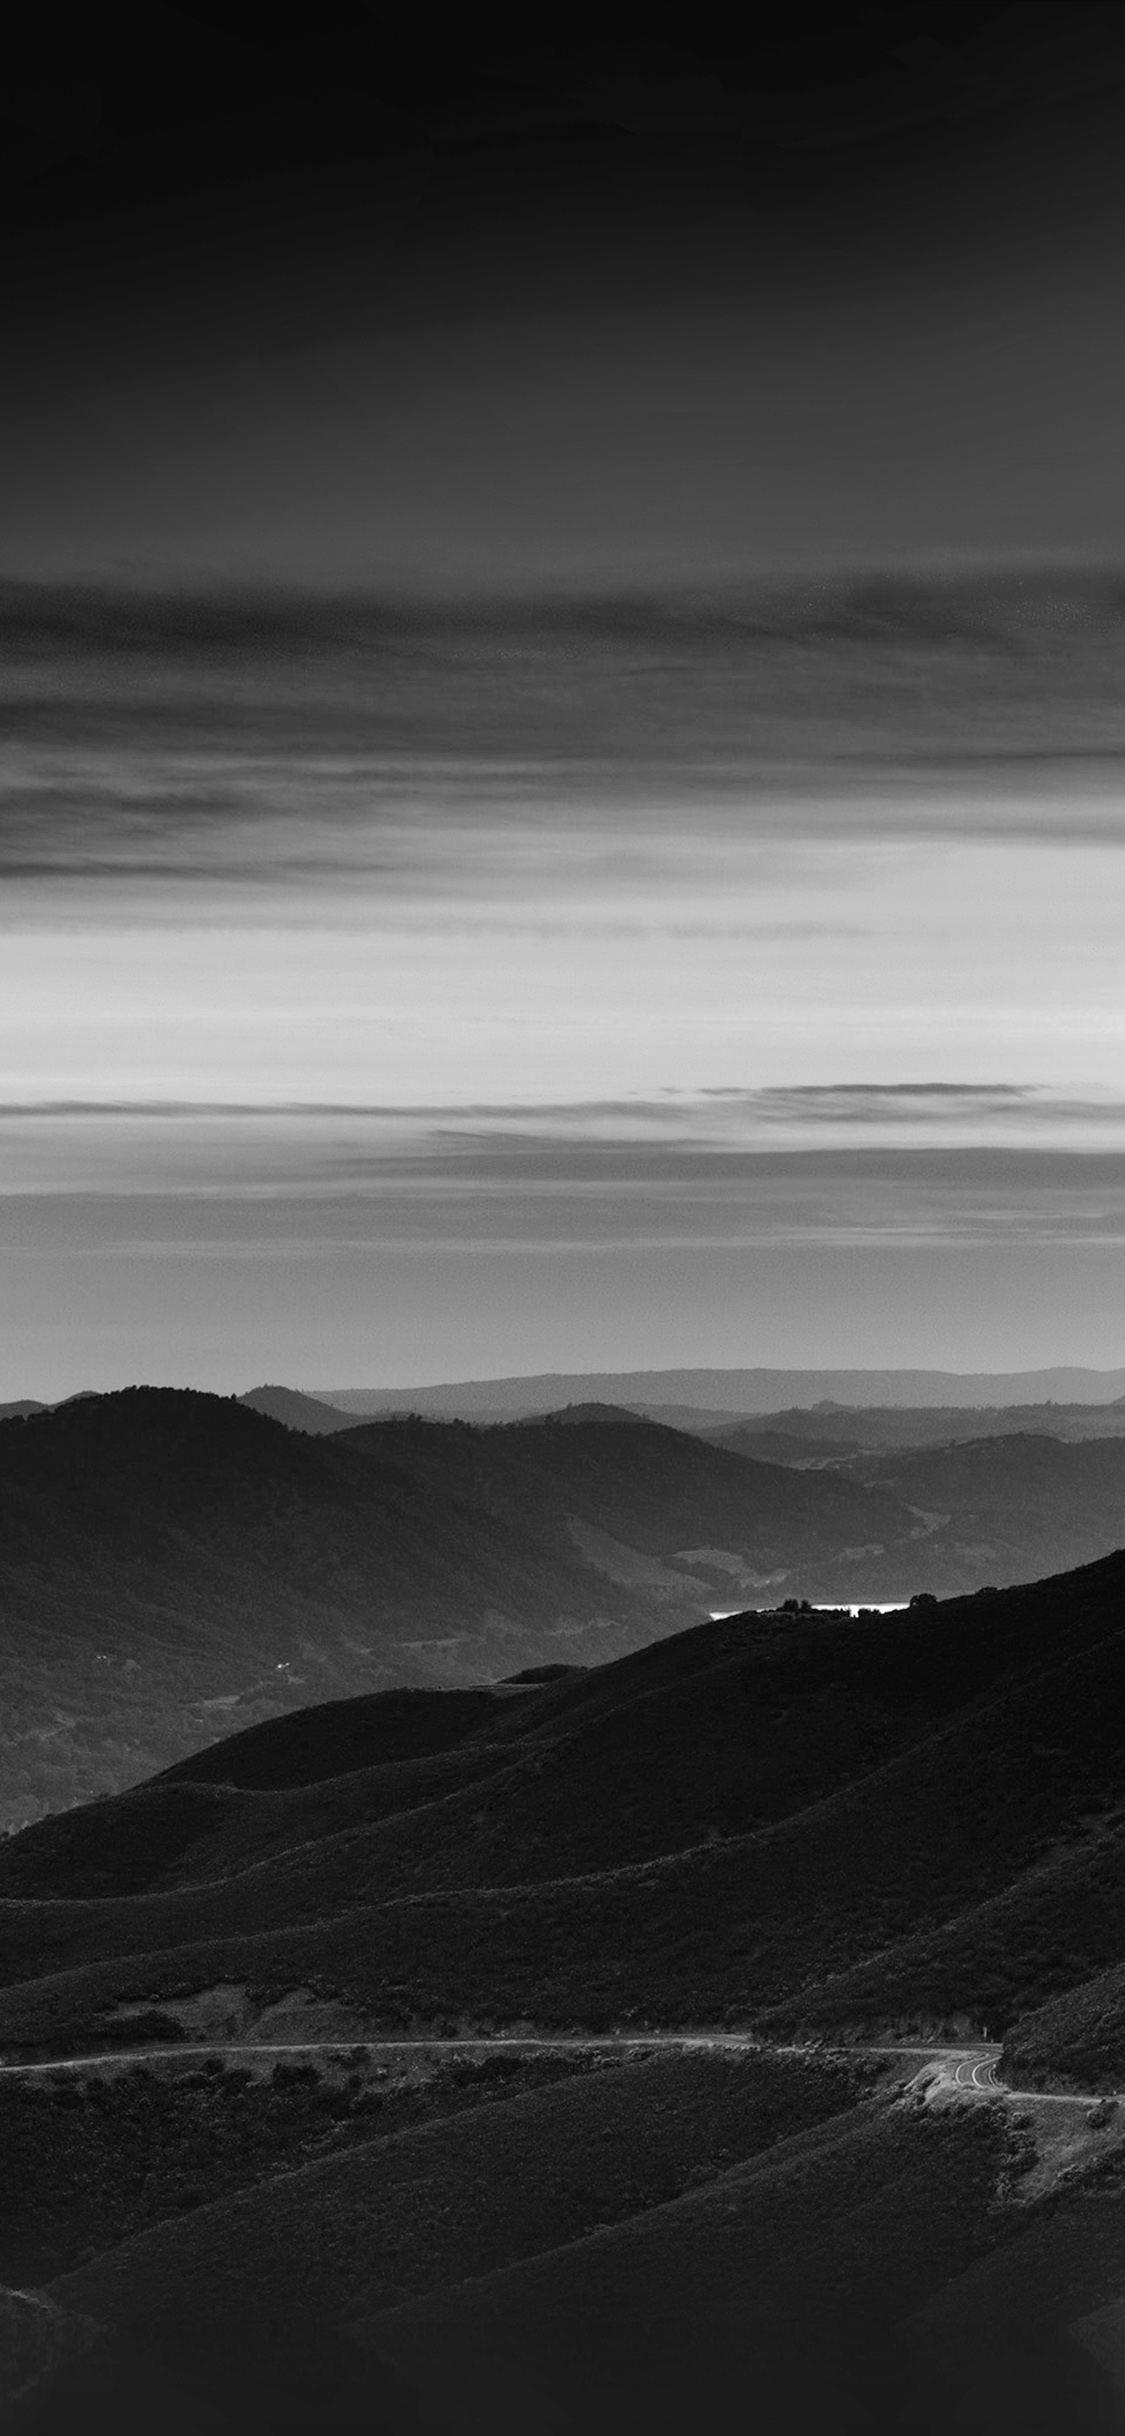 Mr29 Road Curve Mountain Sunset Nature Lovely Bw Dark Wallpaper